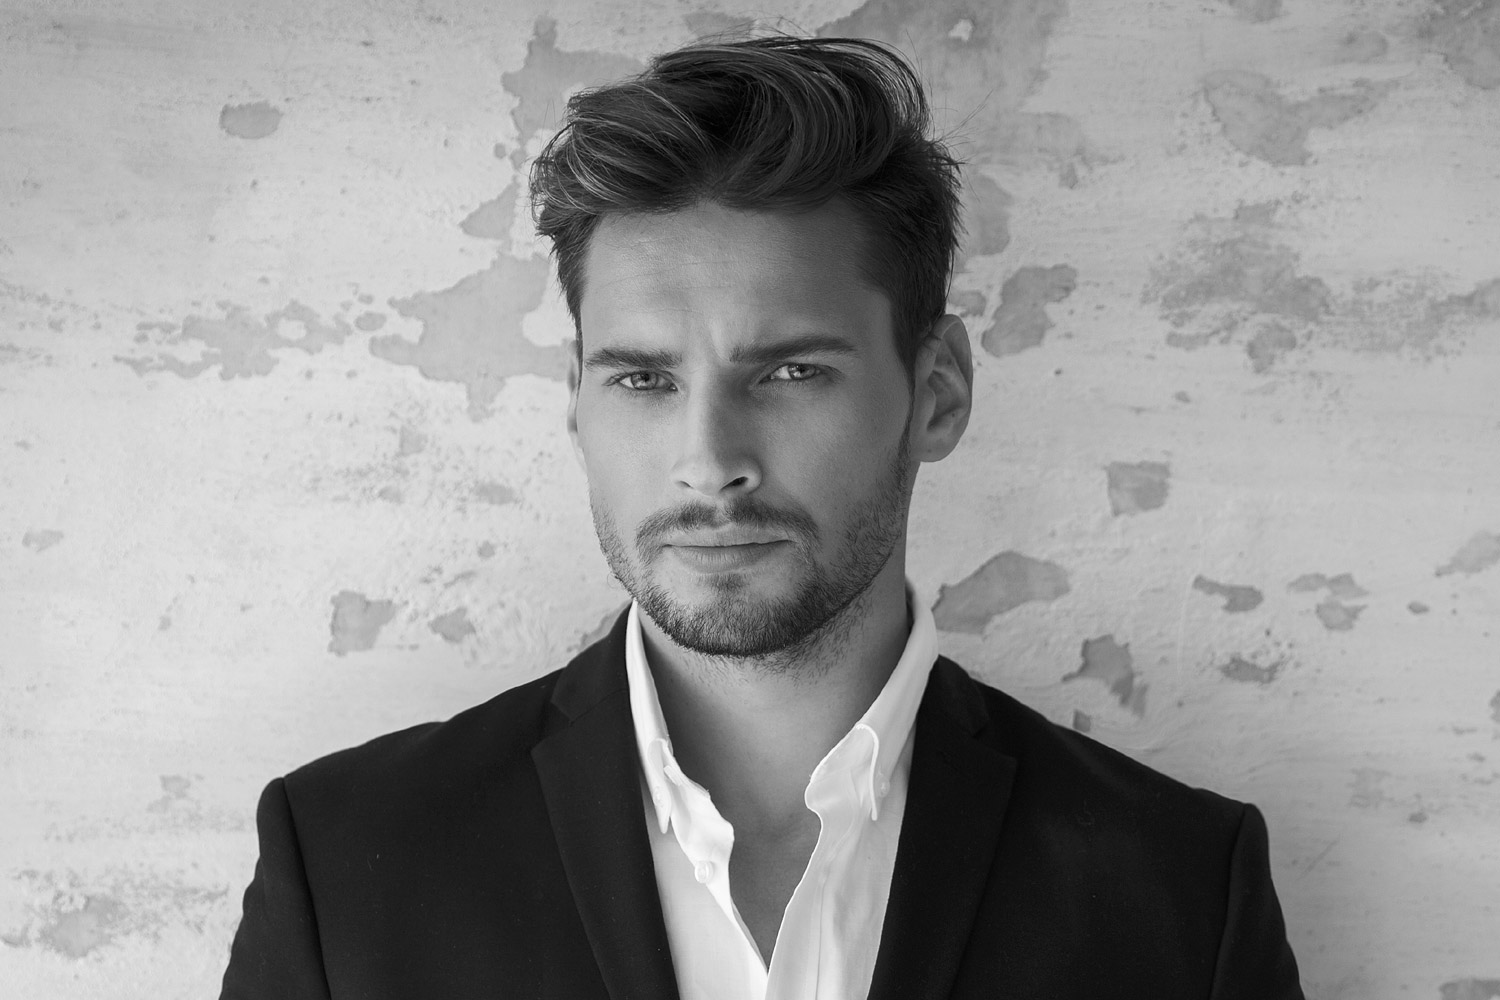 Shampoing / Coupe / Coiffage pour Homme